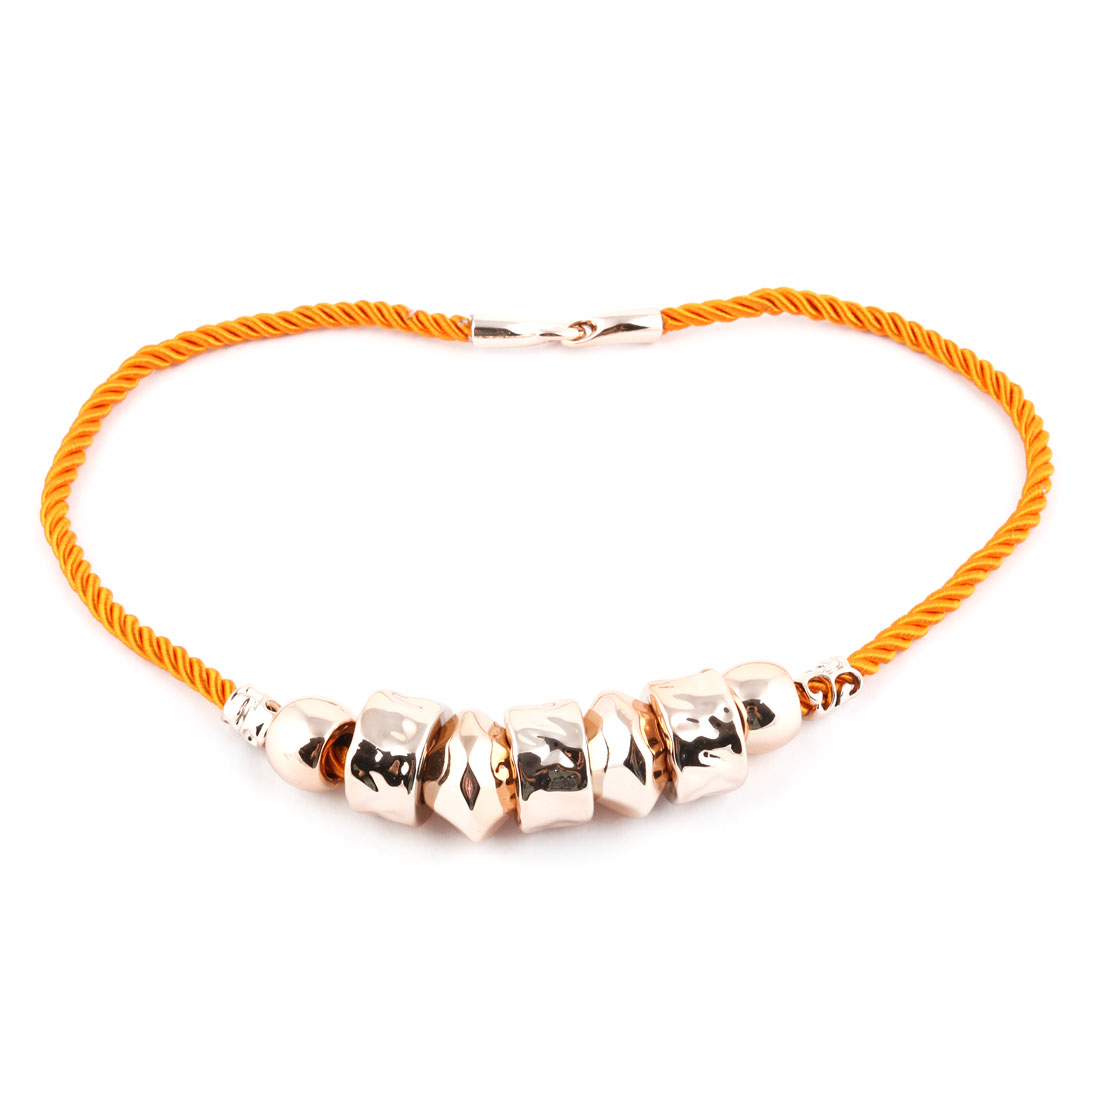 Woman Cylindrical Beads Neck Chain Necklace Statement Chunky Decor Orange